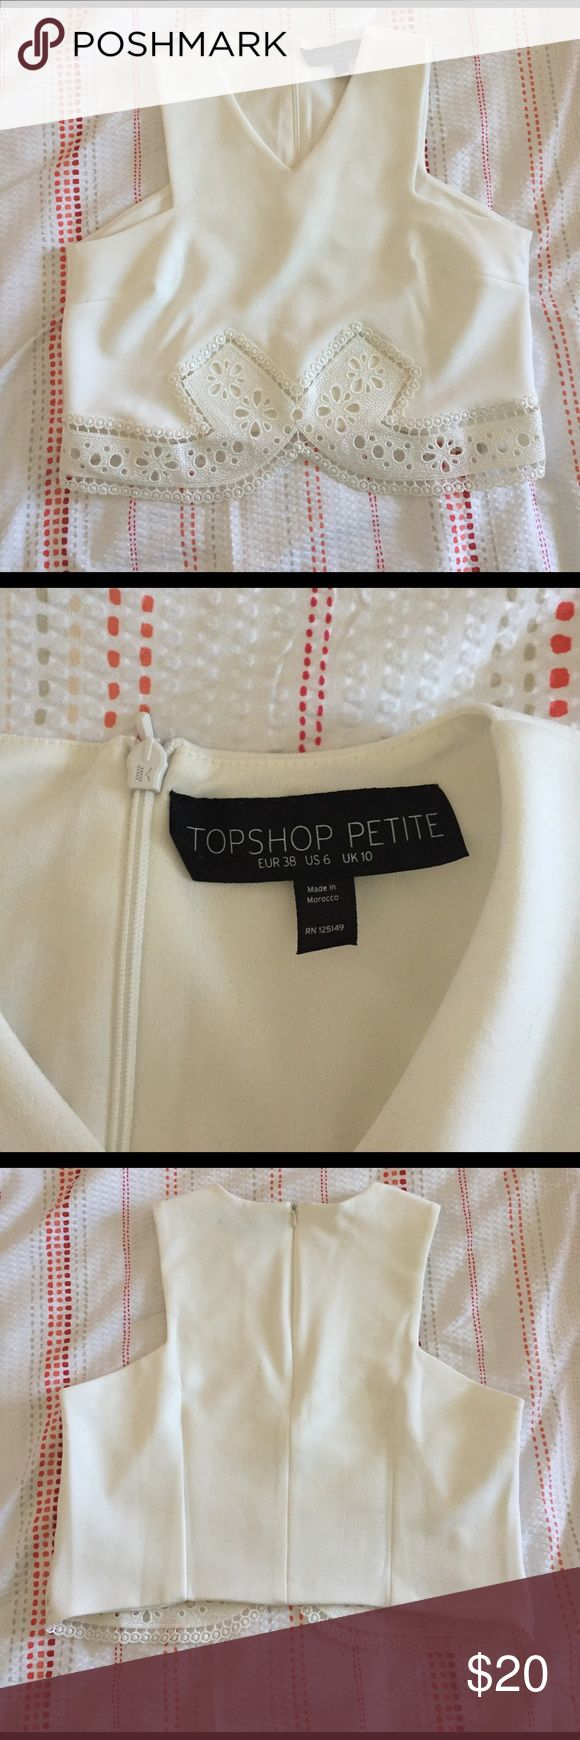 Topshop petite crop top ! TOPSHOP Petite CROP TOP! Super adorable. My boobs are just to big for it now 😩. One stain on the back side on the strap and slight foundation stain on the front Topshop PETITE Tops Crop Tops